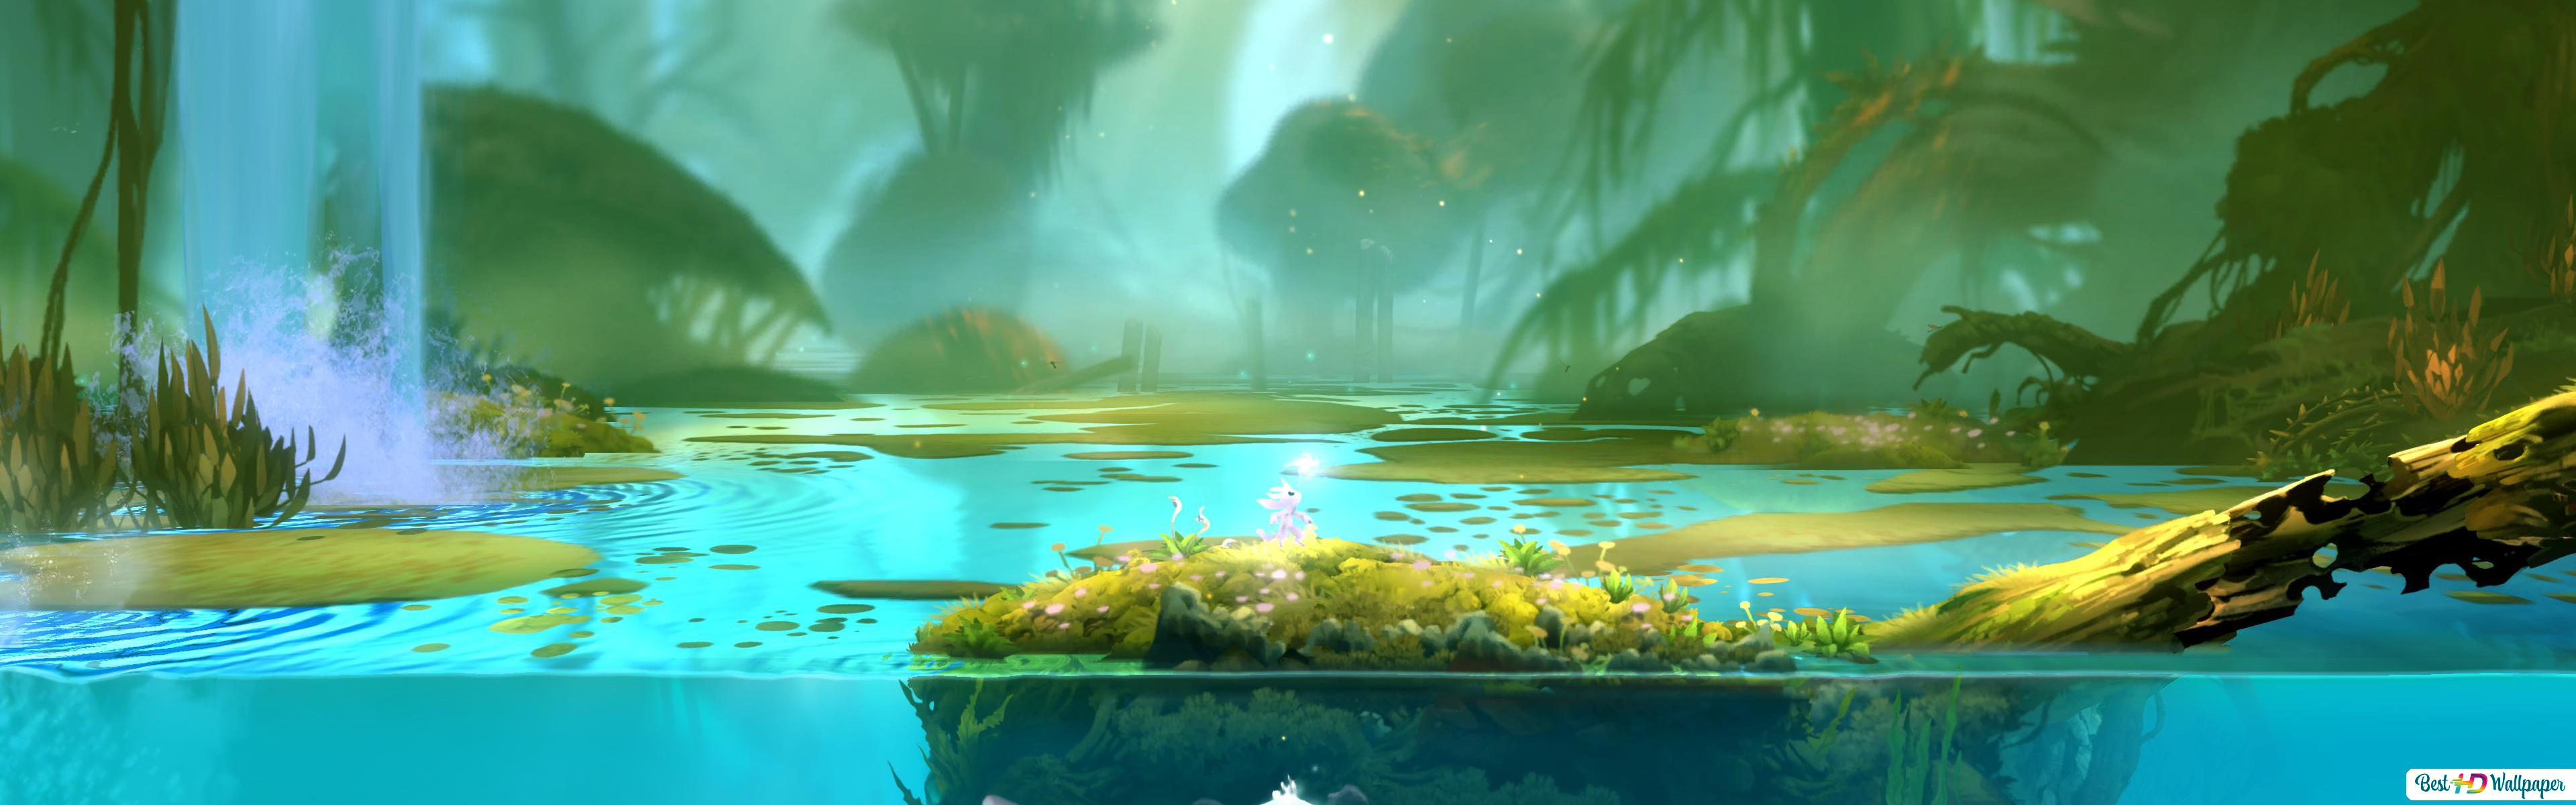 Ori And The Blind Forest 1 Hd Wallpaper Download